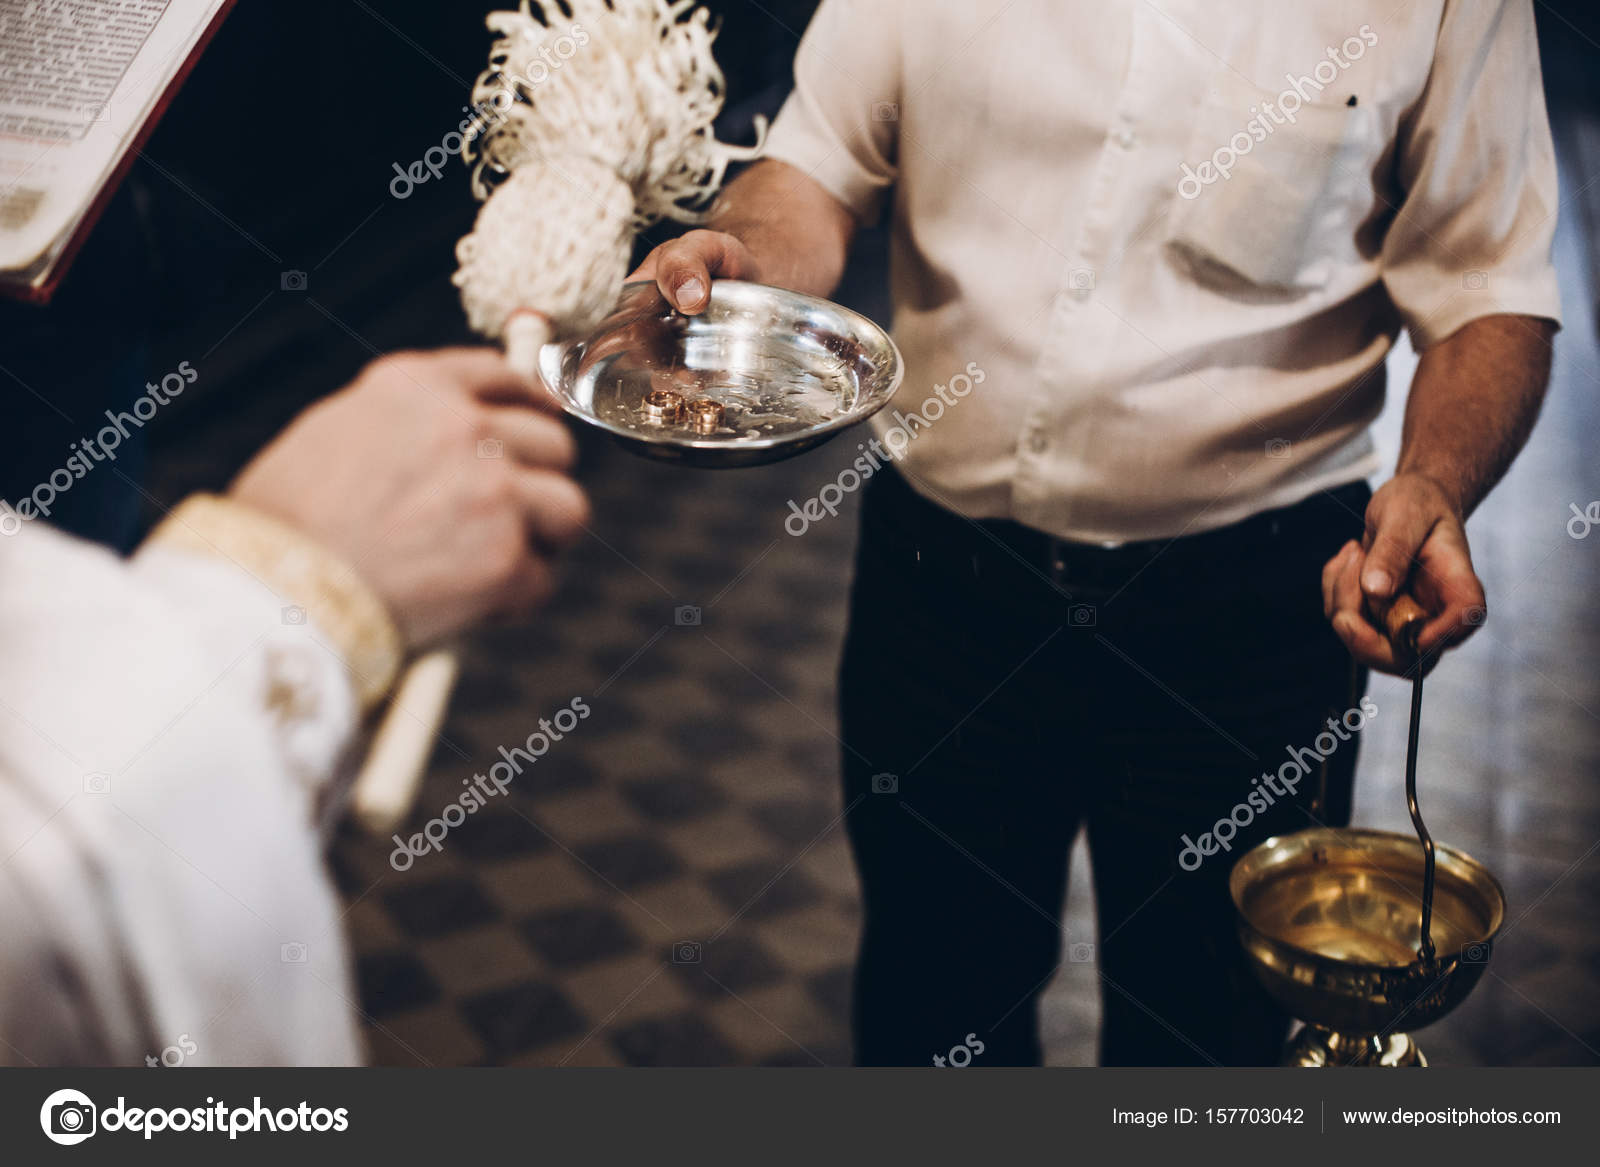 space priest holy text for blessing wedding photo with ceremony religion church rings water in